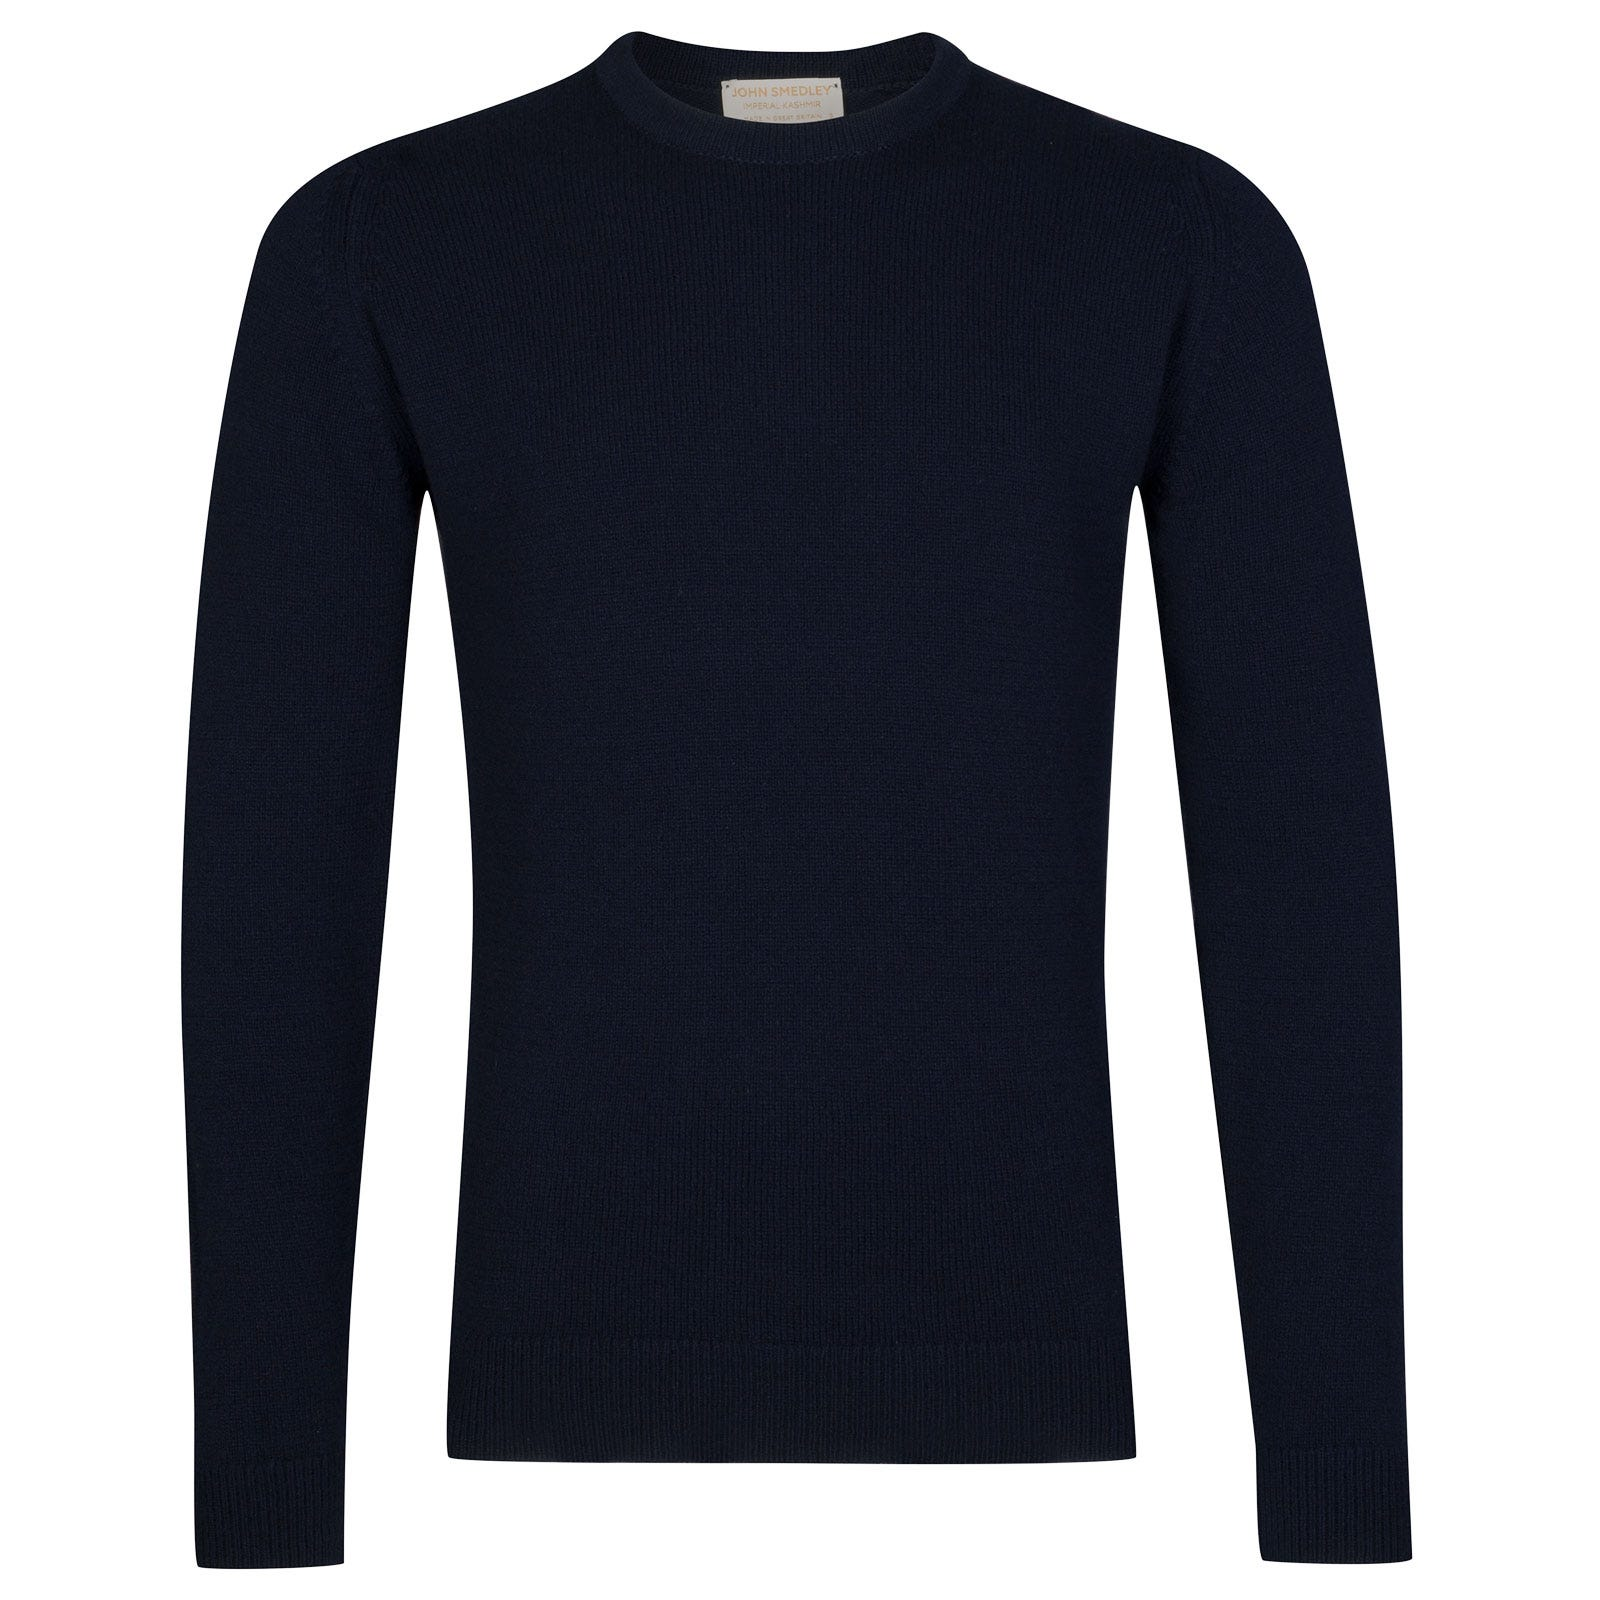 John Smedley Crowford Wool and Cashmere Pullover in Midnight-XXL